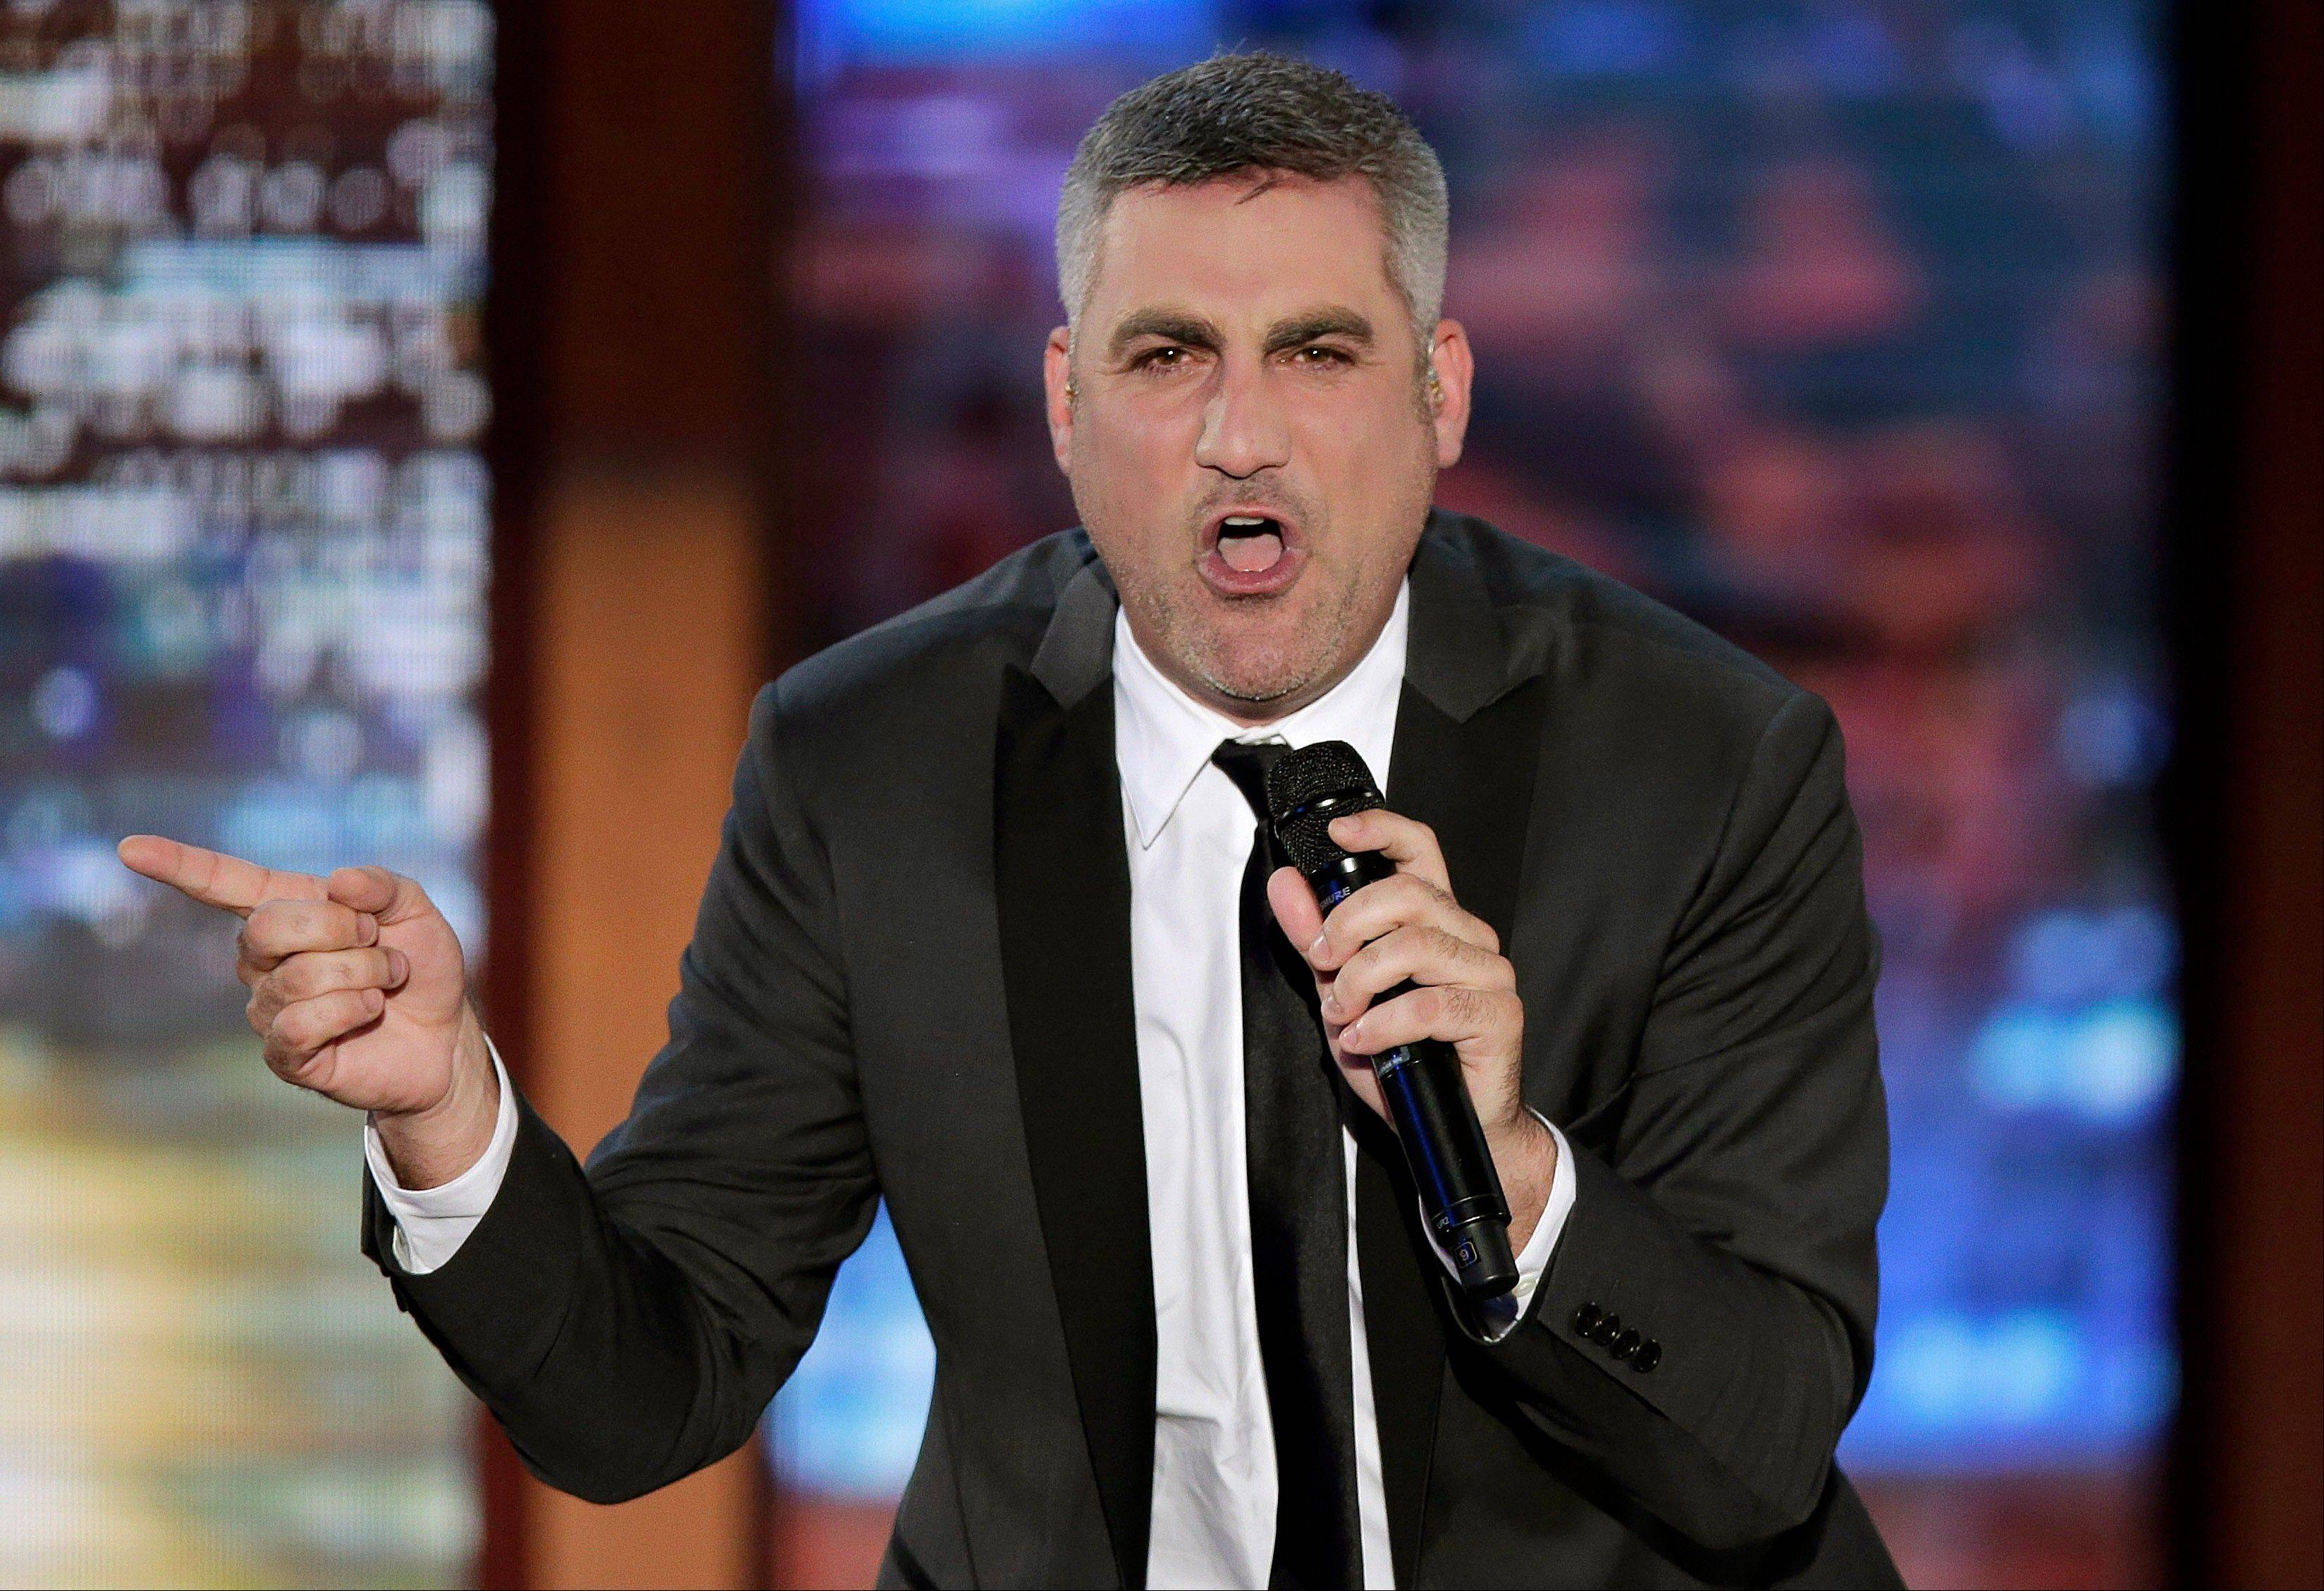 Taylor Hicks sings during the Republican National Convention in Tampa, Fla., on Thursday, Aug. 30, 2012.